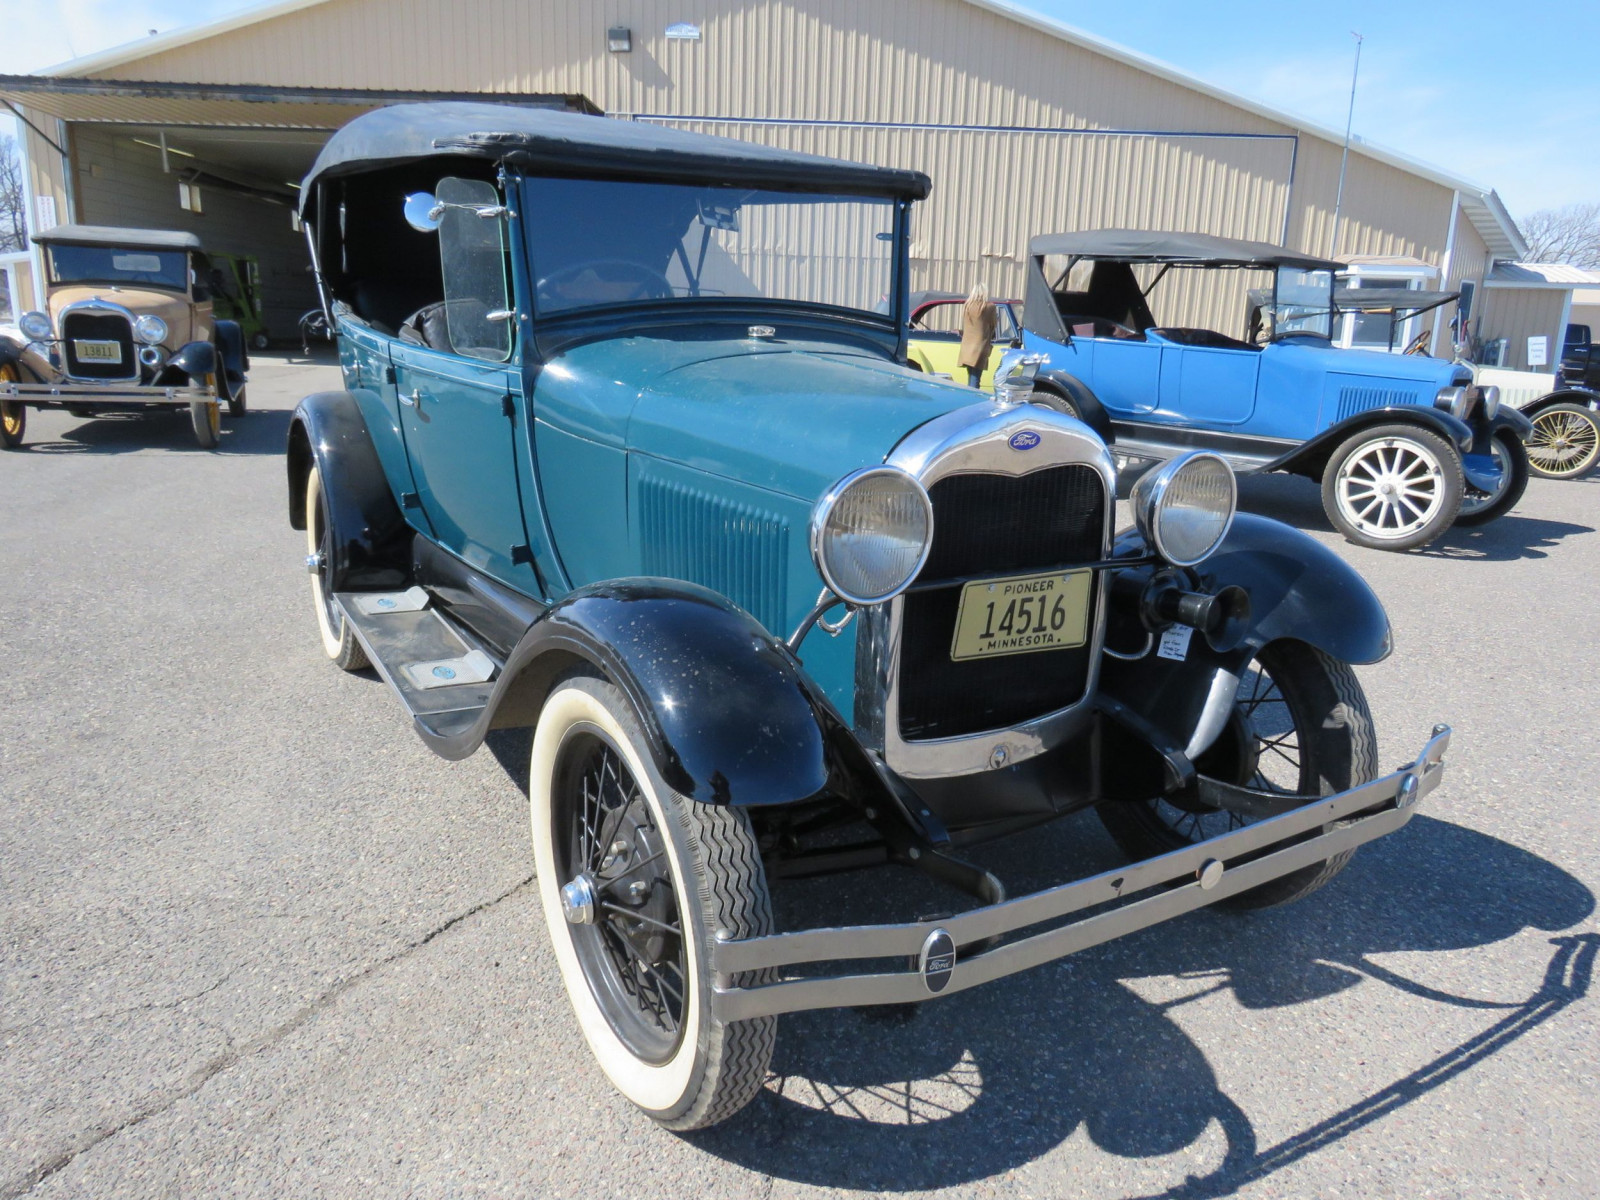 1929 Ford Model A Phaeton - Image 17